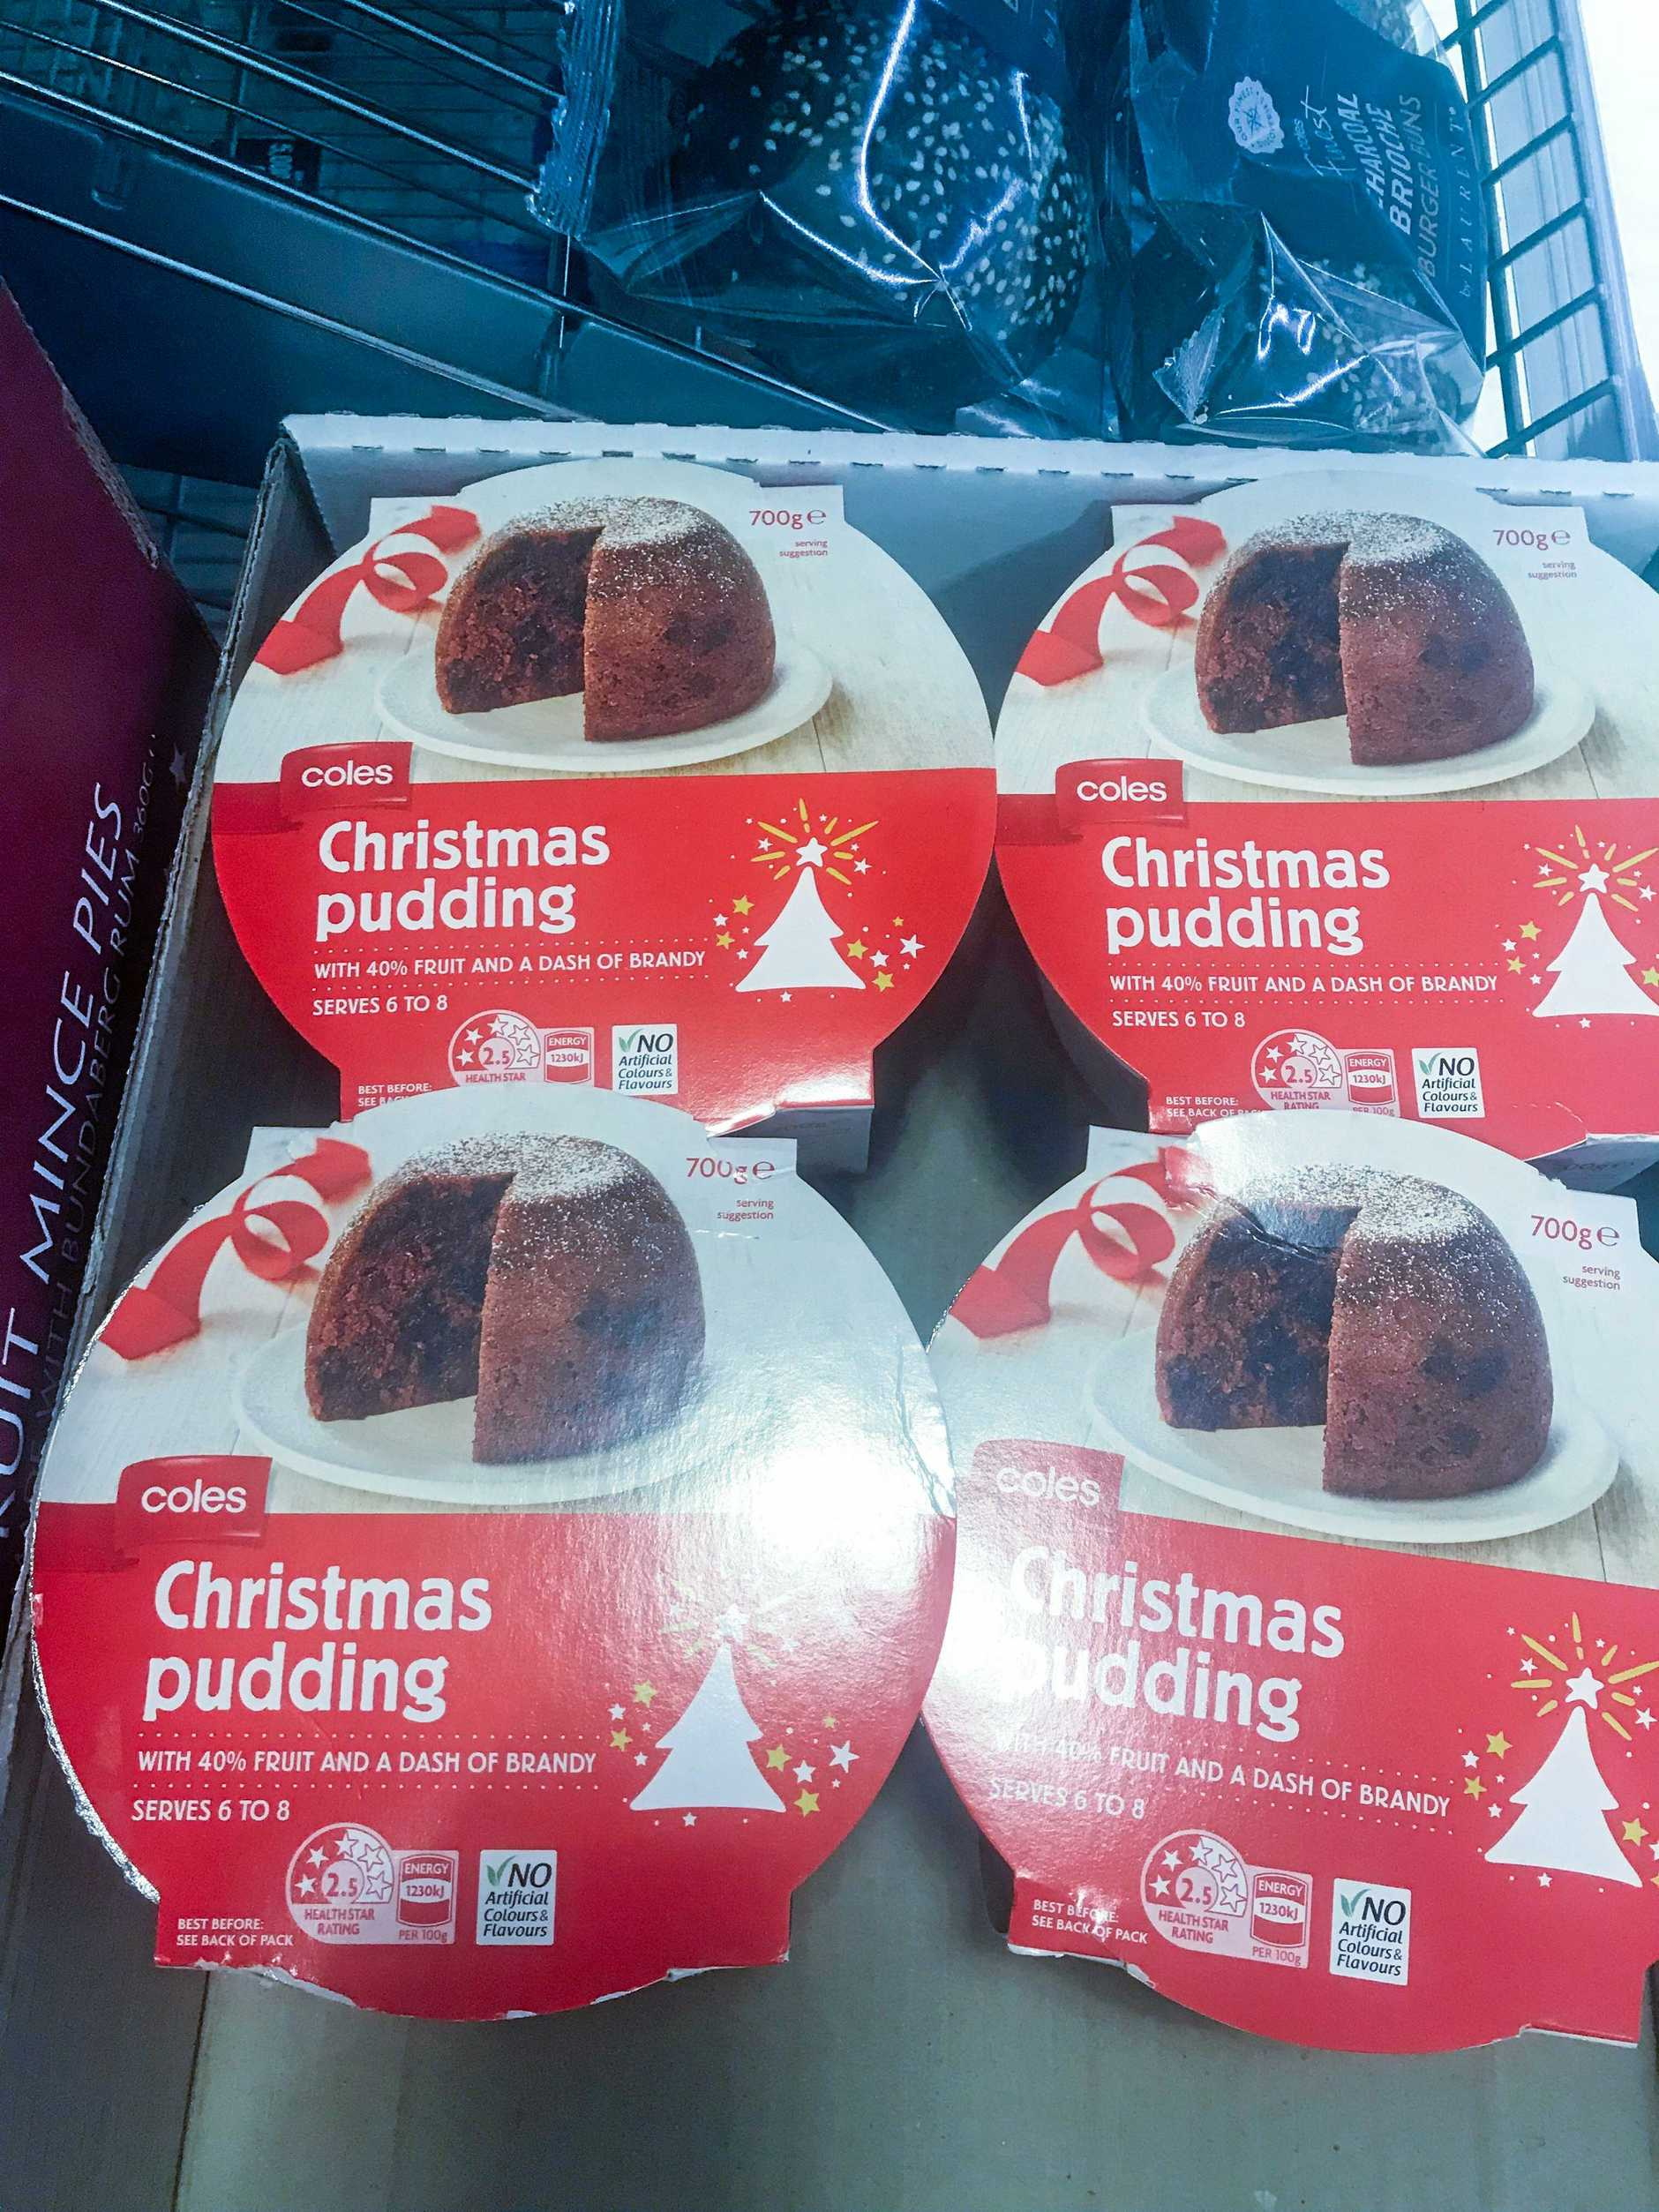 WINTER WARMER? Nothing like a Christmas pudding on a nippy spring night.